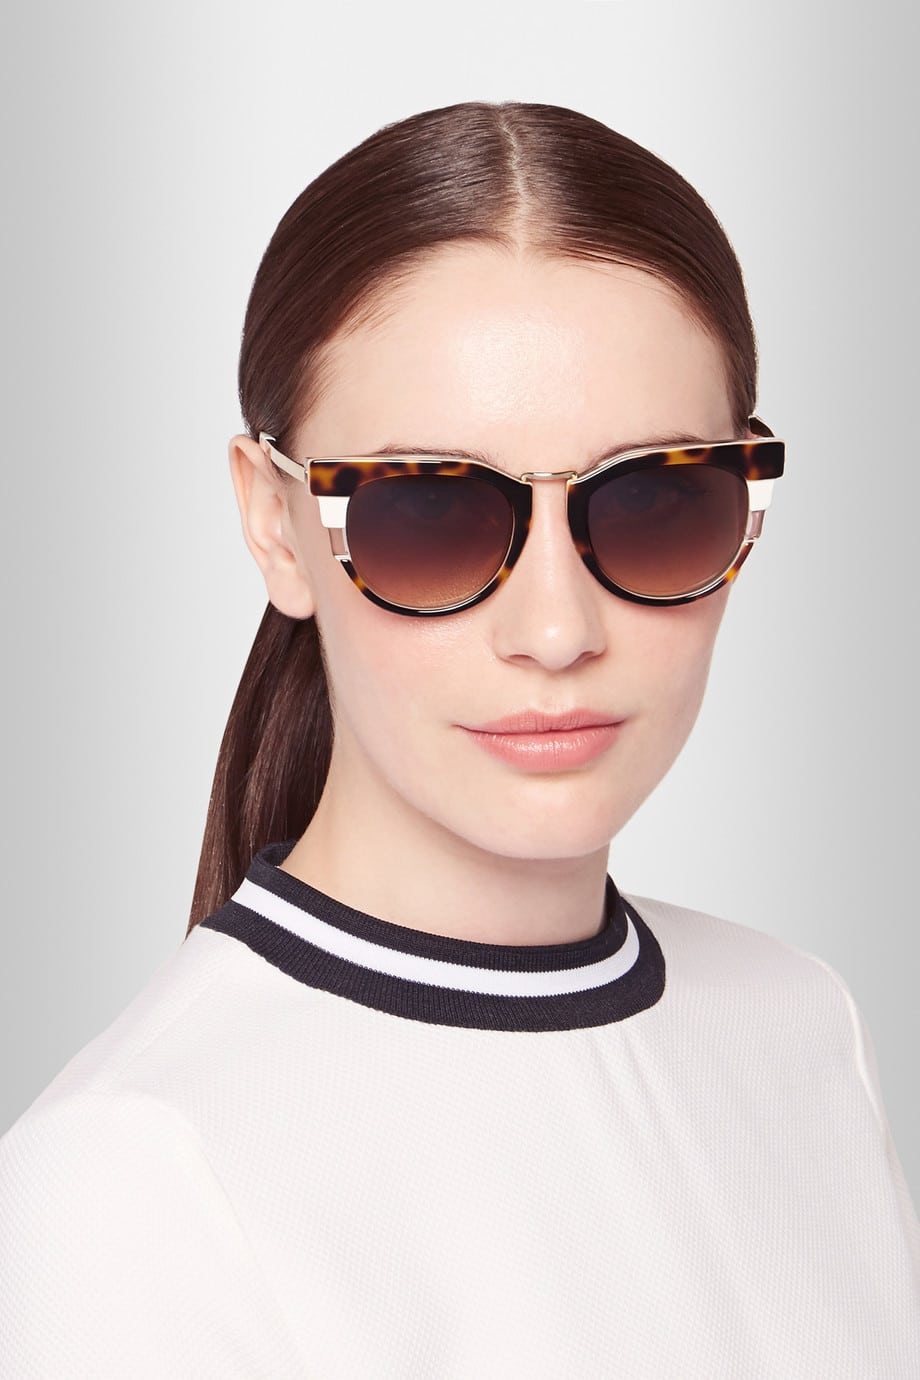 ny2016-gift-fendi-cat-eye-acetate-sunglasses